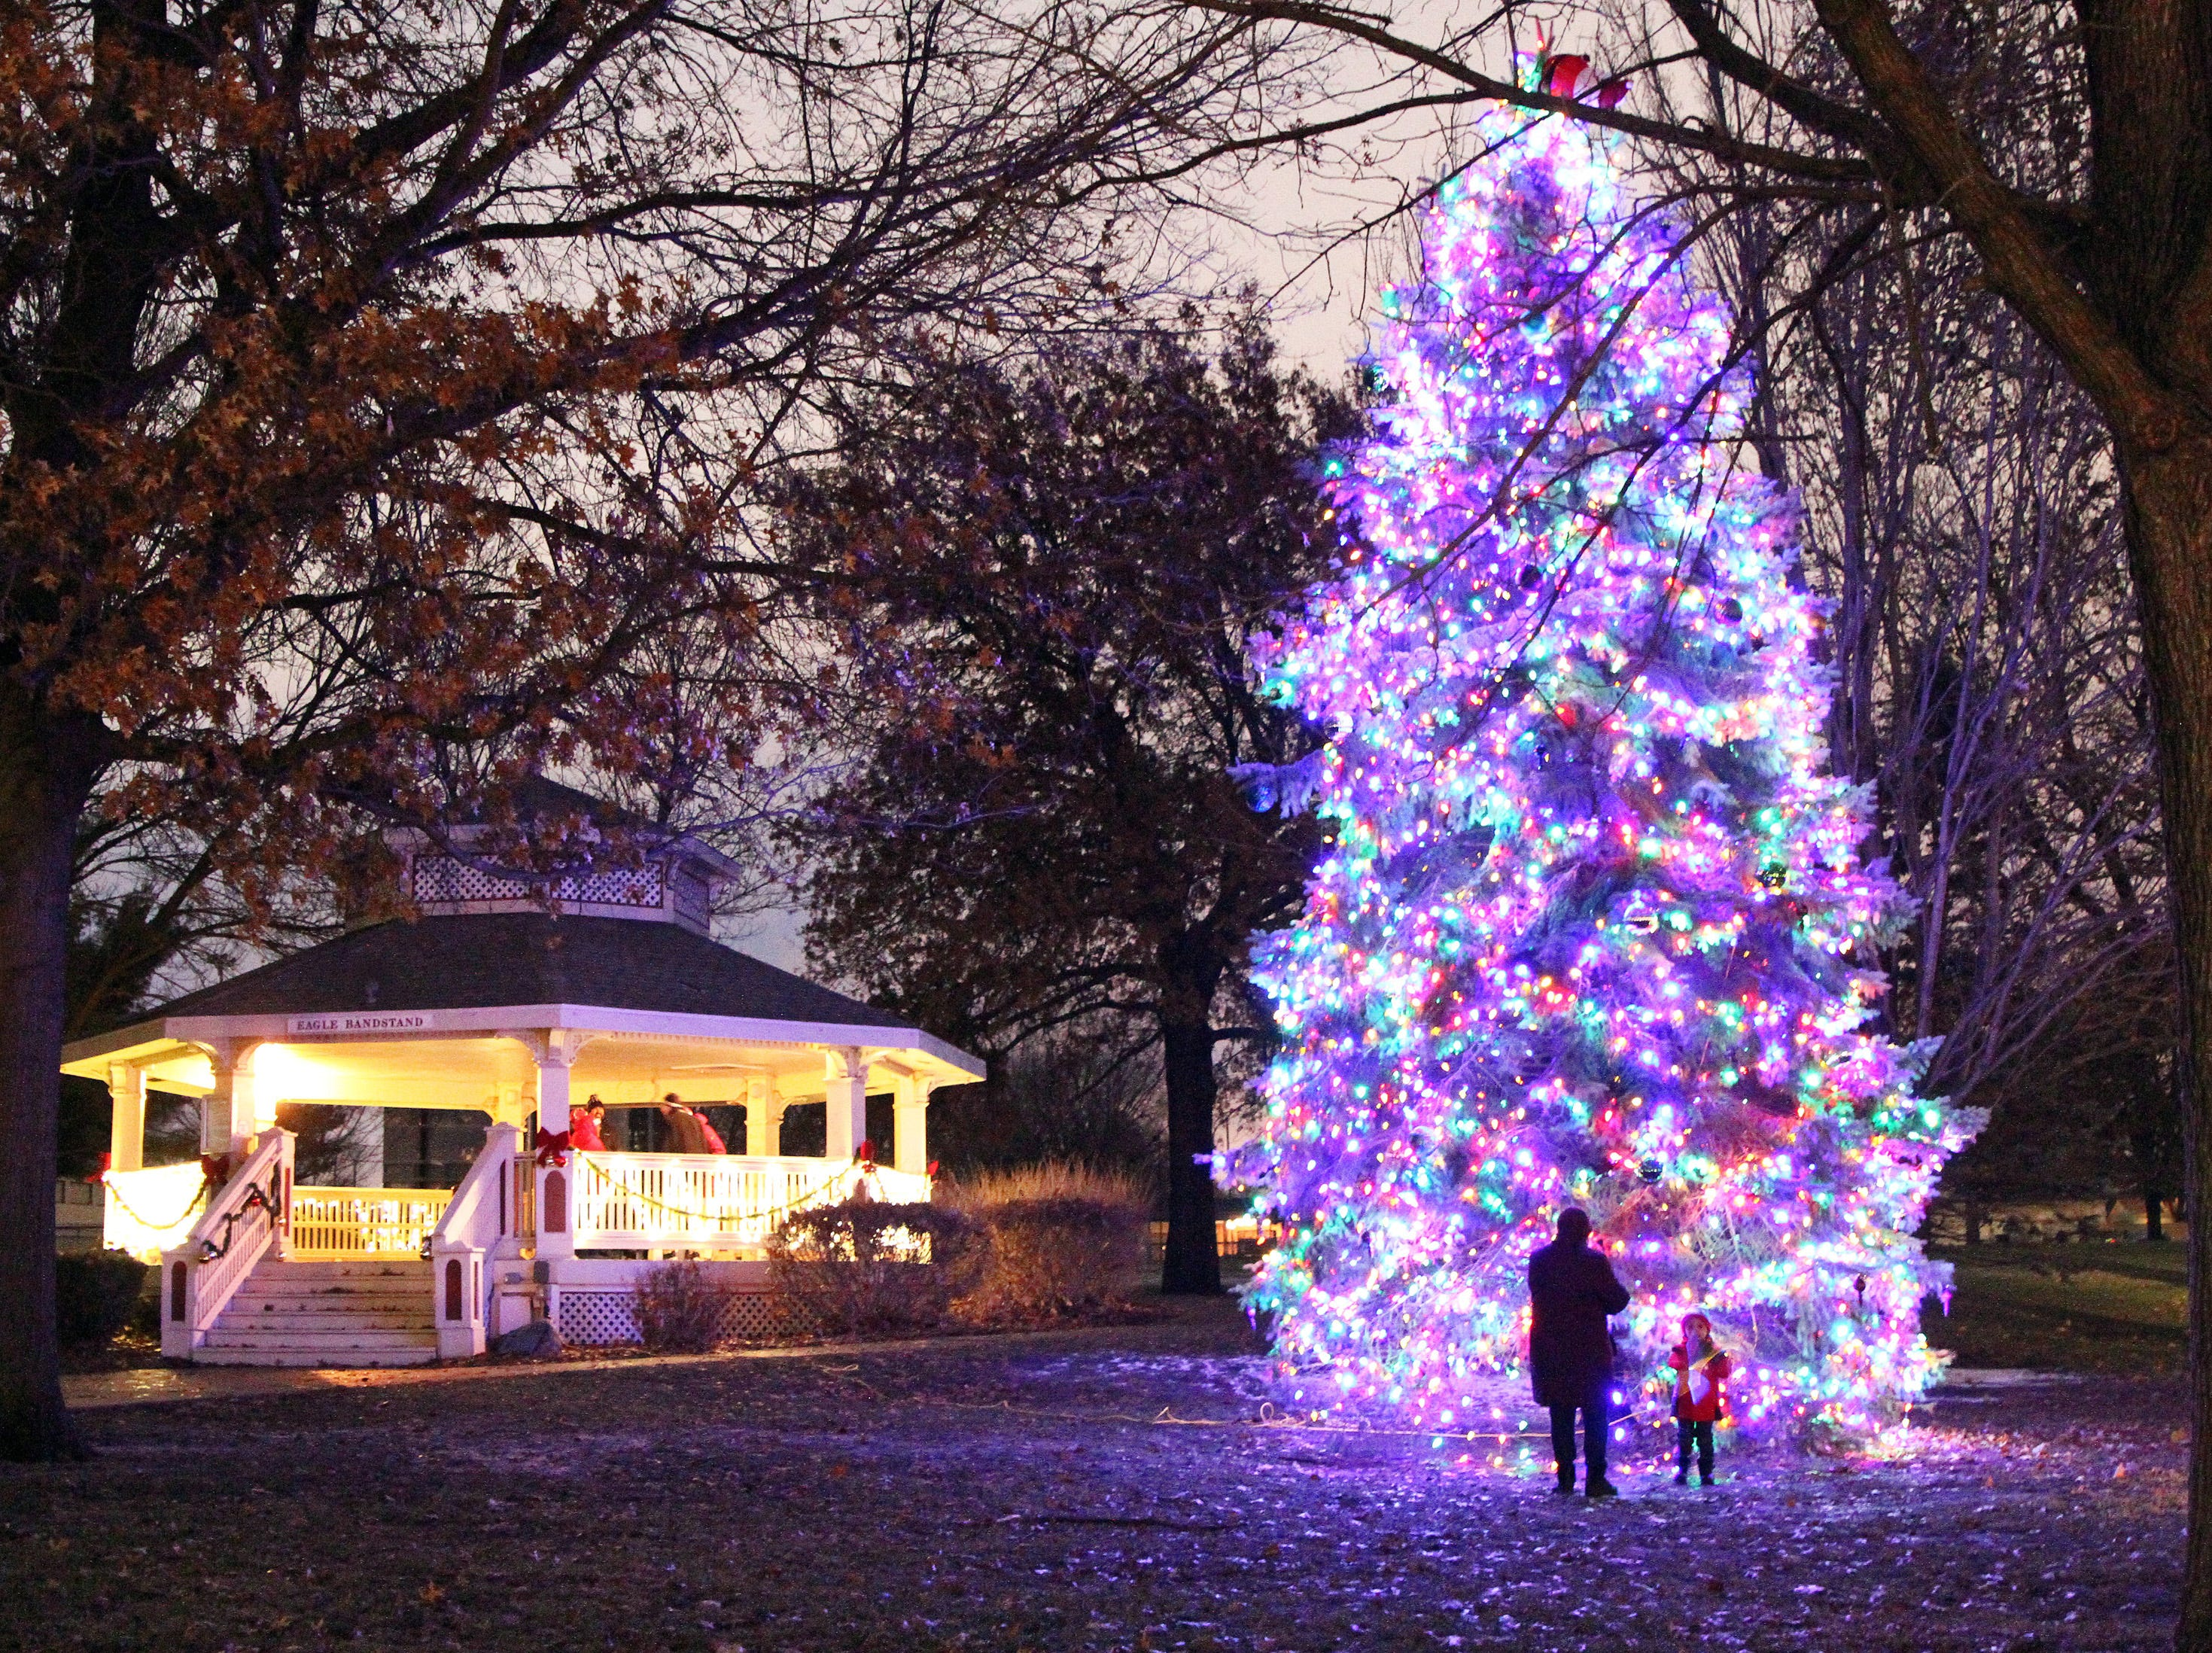 After the ceremony ended, a woman snaps a photo of her grandson in front of the tree during UCAN's third annual Light Up Urbandale on Sunday, Dec. 2, 2018 at Lions Park in Urbandale. Holiday festivities included a visit from Santa, crafts, goodies, official tree lighting ceremony, live reindeer and entertainment. This event helps raise awareness and support for the Urbandale Community Action Network Holiday Helping Hands Programs for families, kids, teens and seniors in need.